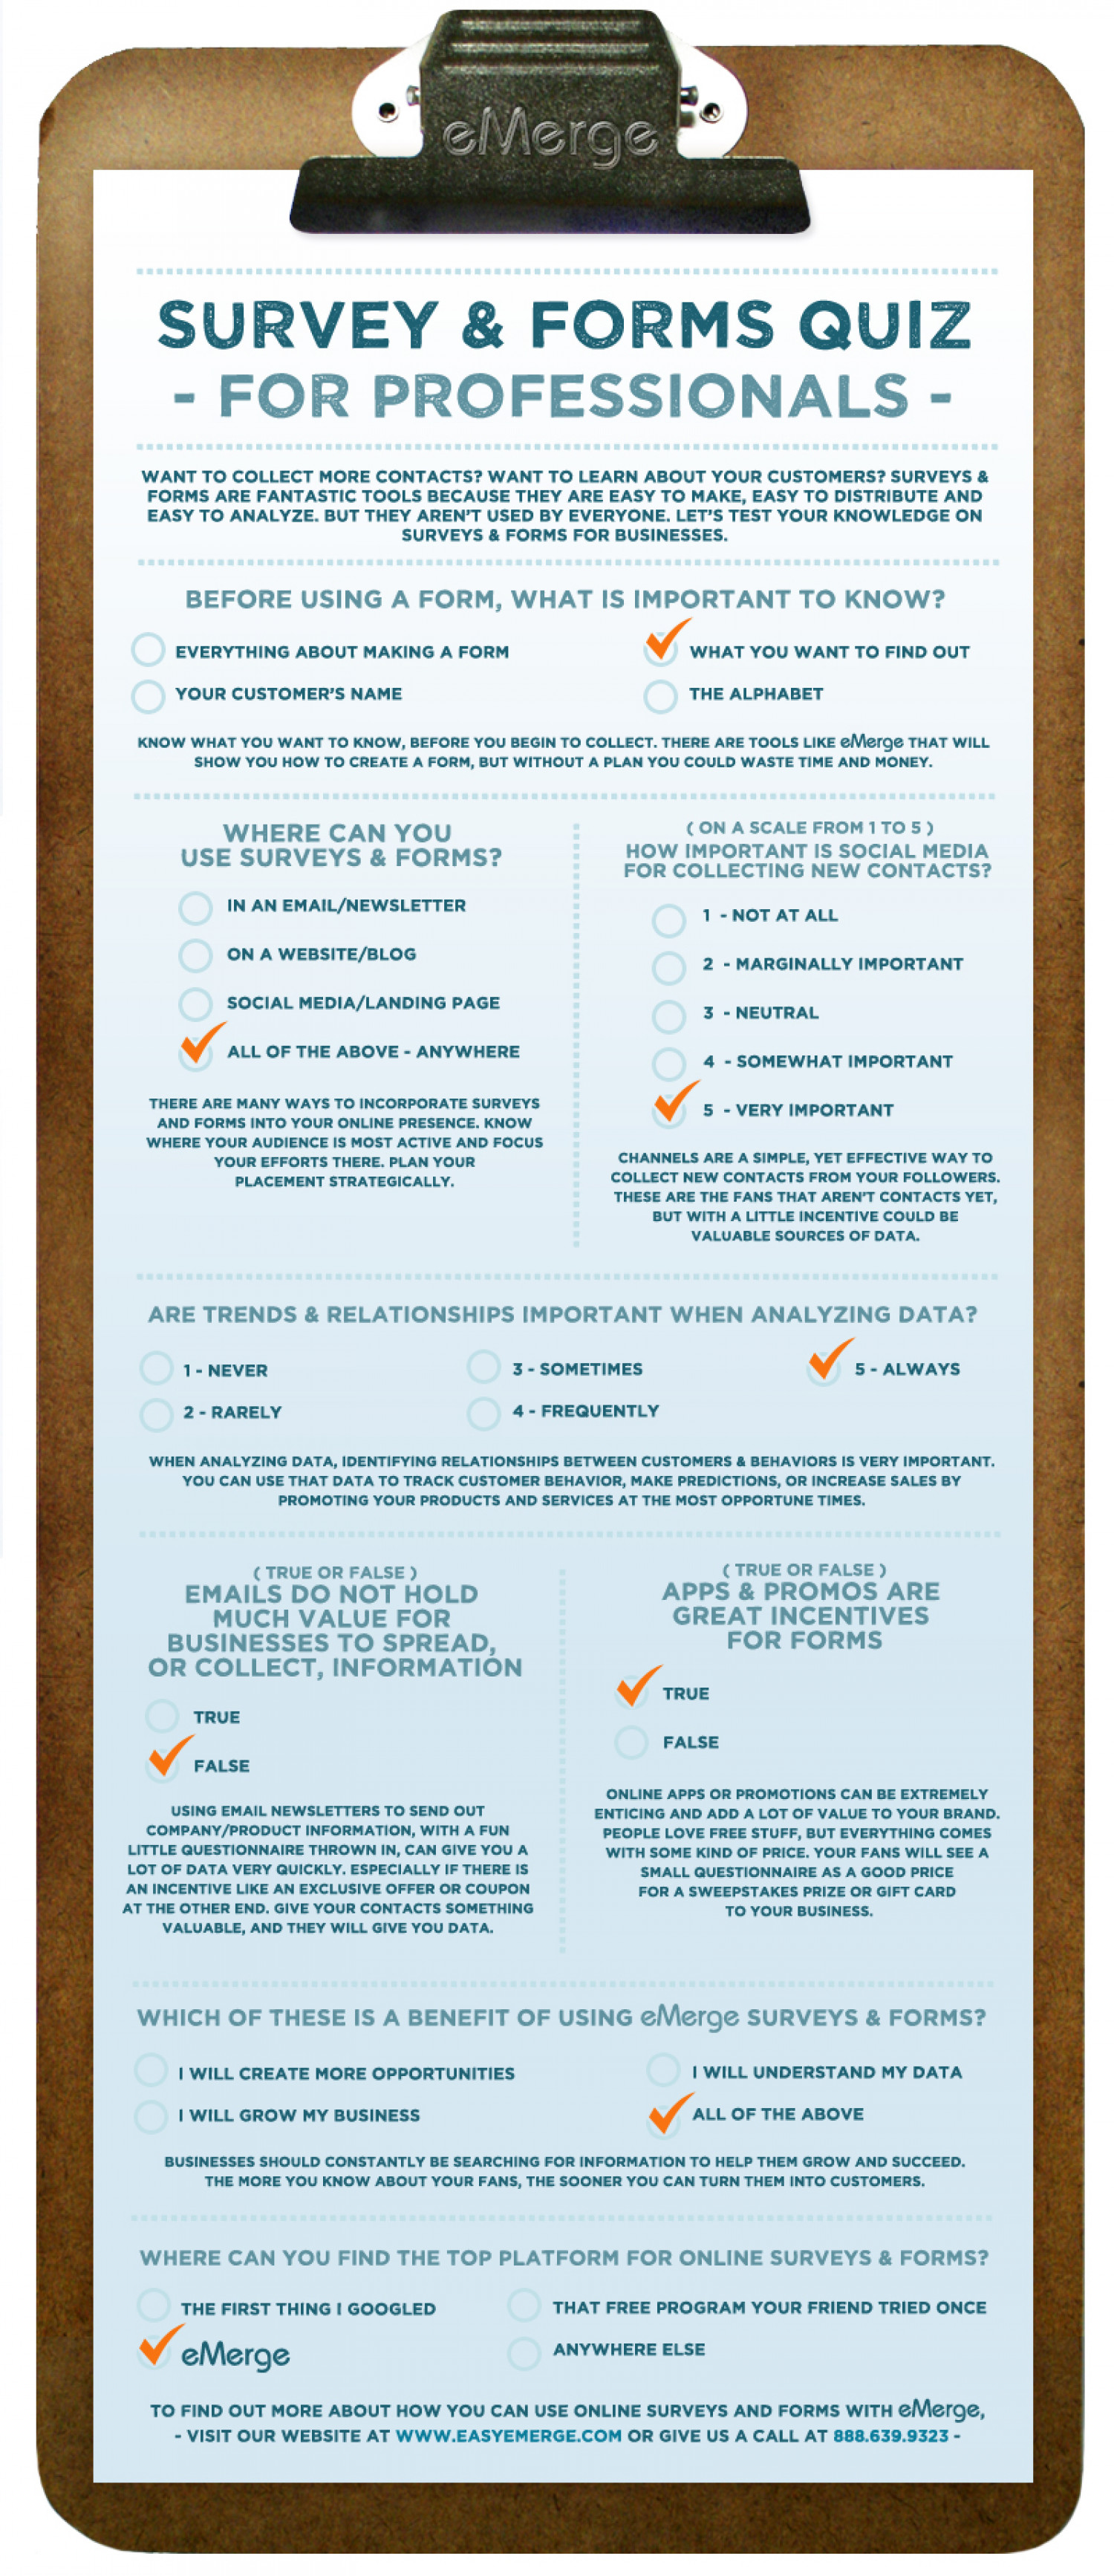 Survey & Forms Quiz - For Professionals Infographic